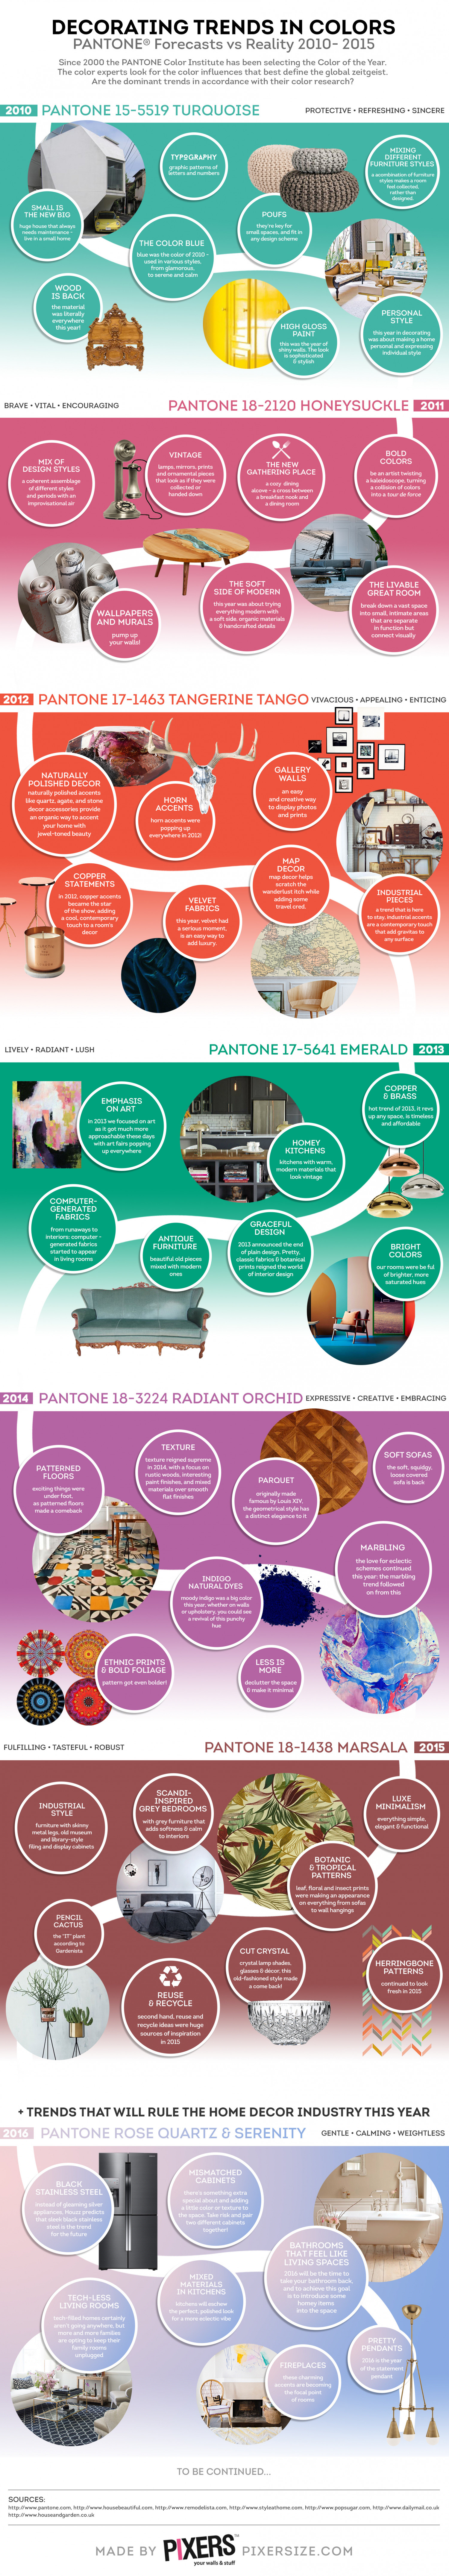 Decorating Trends in PANTONE's Colors 2010-2016 Infographic